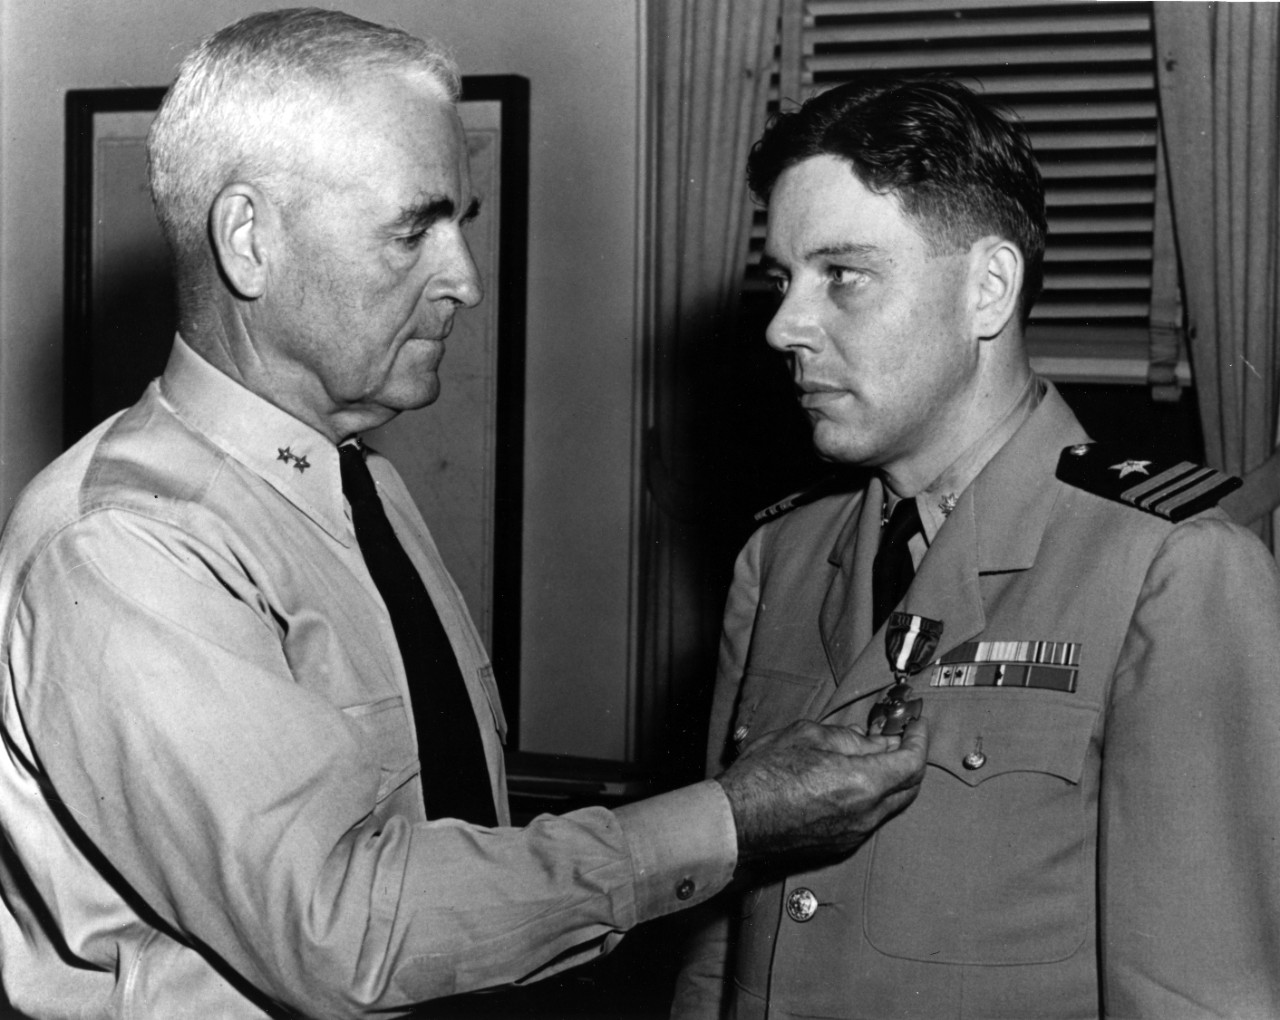 Rear Adm. David M. LeBreton awards Lt. Cmdr. Copeland the Navy Cross for heroism while in command of Samuel B. Roberts in the Battle off Samar, on 25 October 1944. This ceremony took place at Norfolk, Va., on 16 July 1945. (Naval History and Heritage Command Photograph NH 90677)